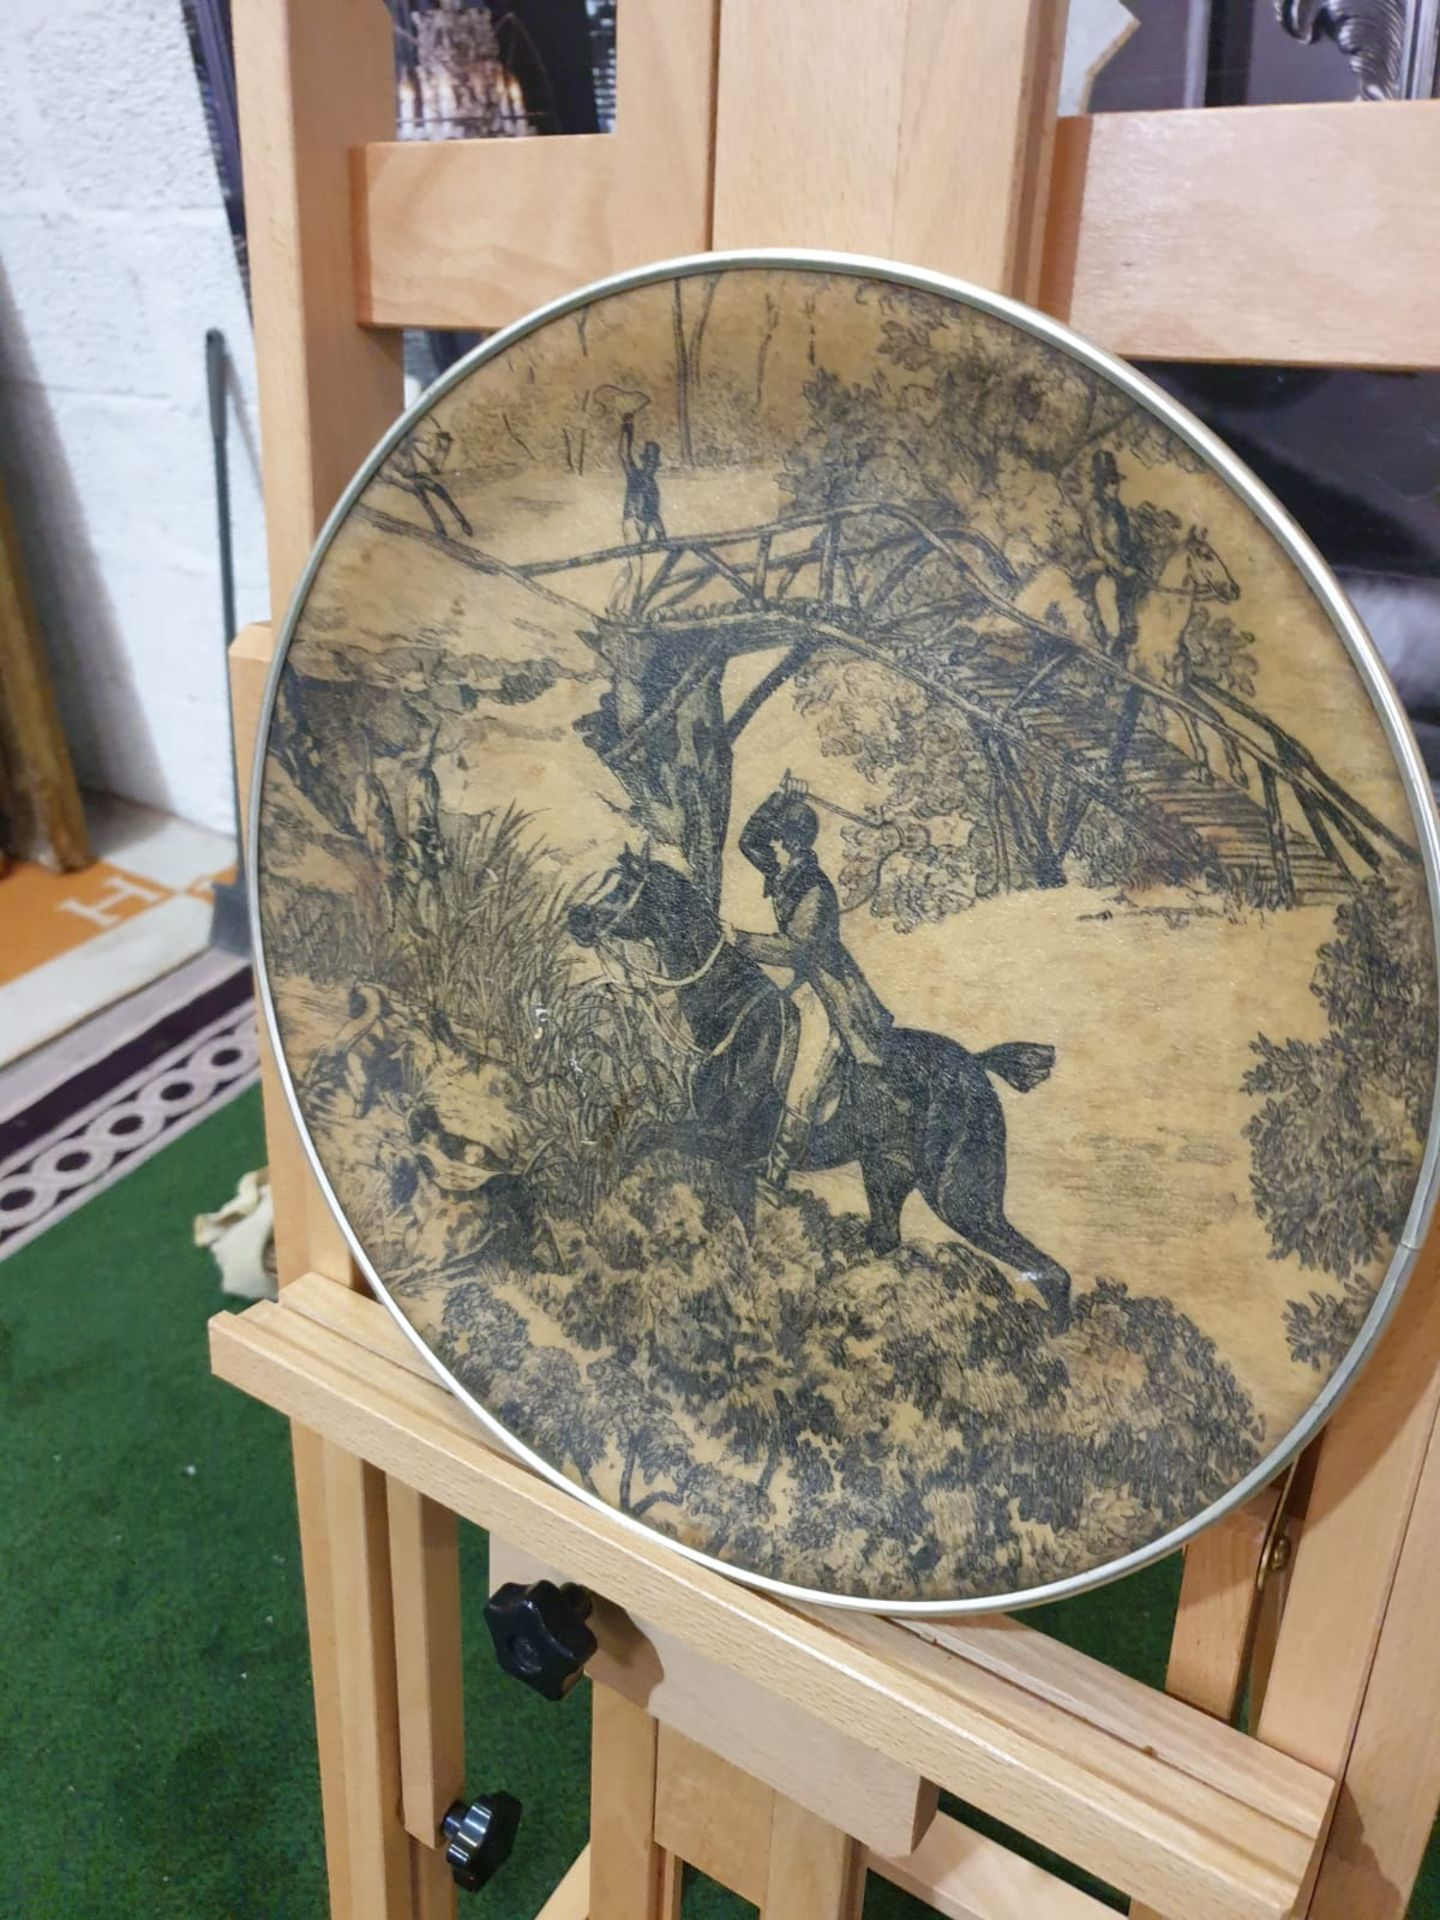 A Vintage Round fibreglass plate painted with hunting scene 35cm - Image 2 of 3